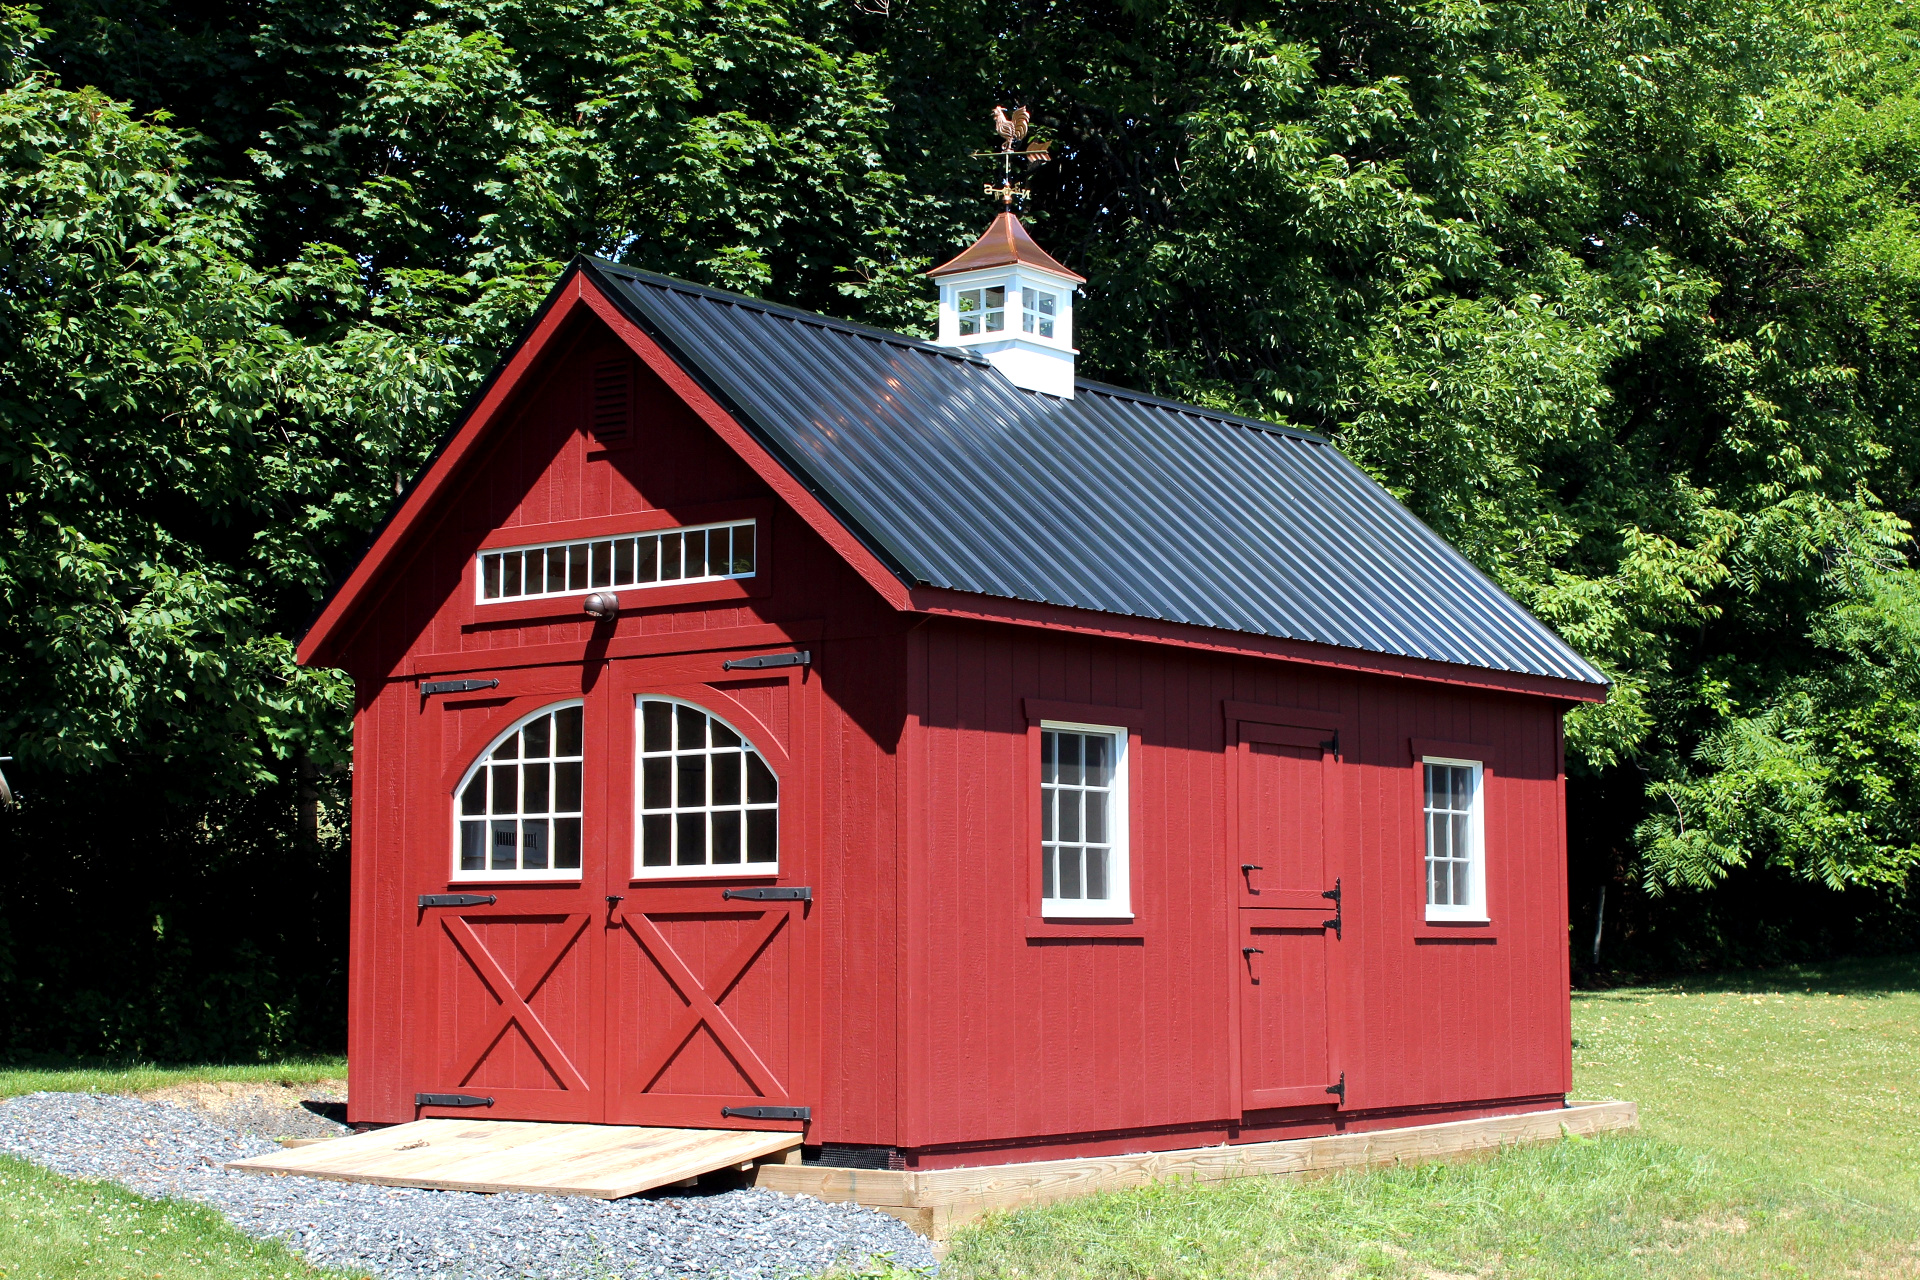 Premo Products For Quality Sheds In The Syracuse Ny And Surrounding Areas Poly Furniture Gazebos Pavilions Pergolas Pool Houses Car Ports